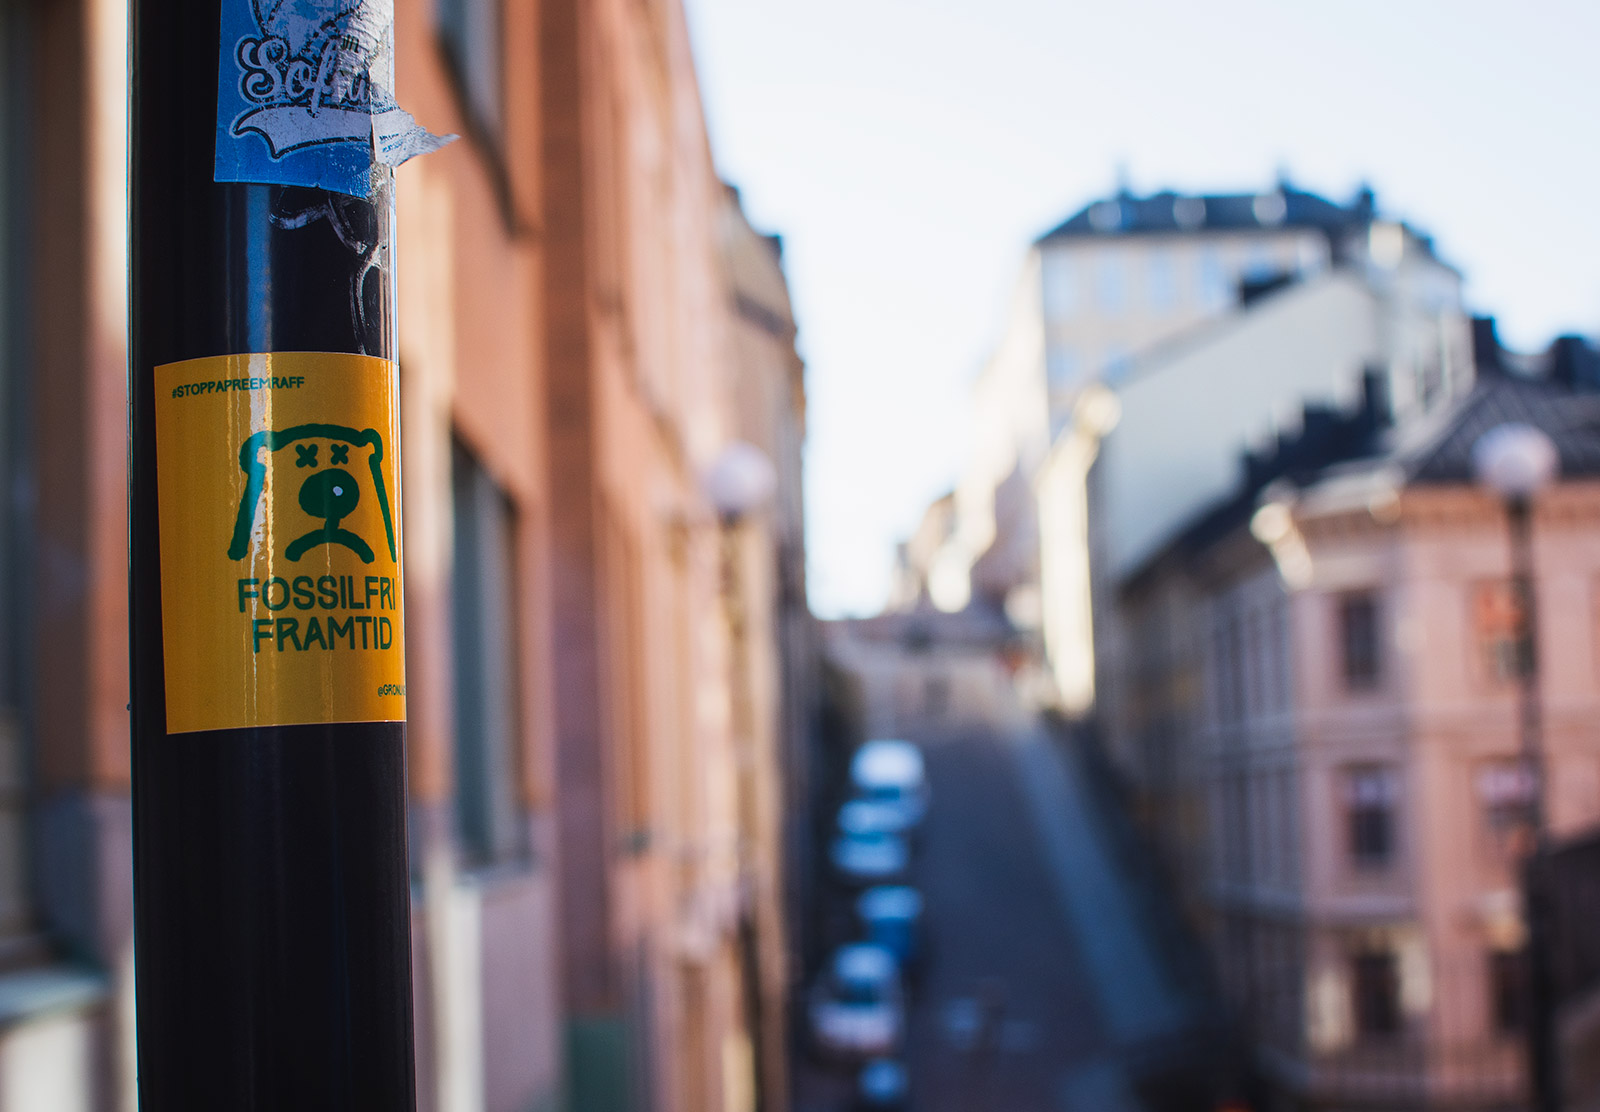 Climate sticker on lampost